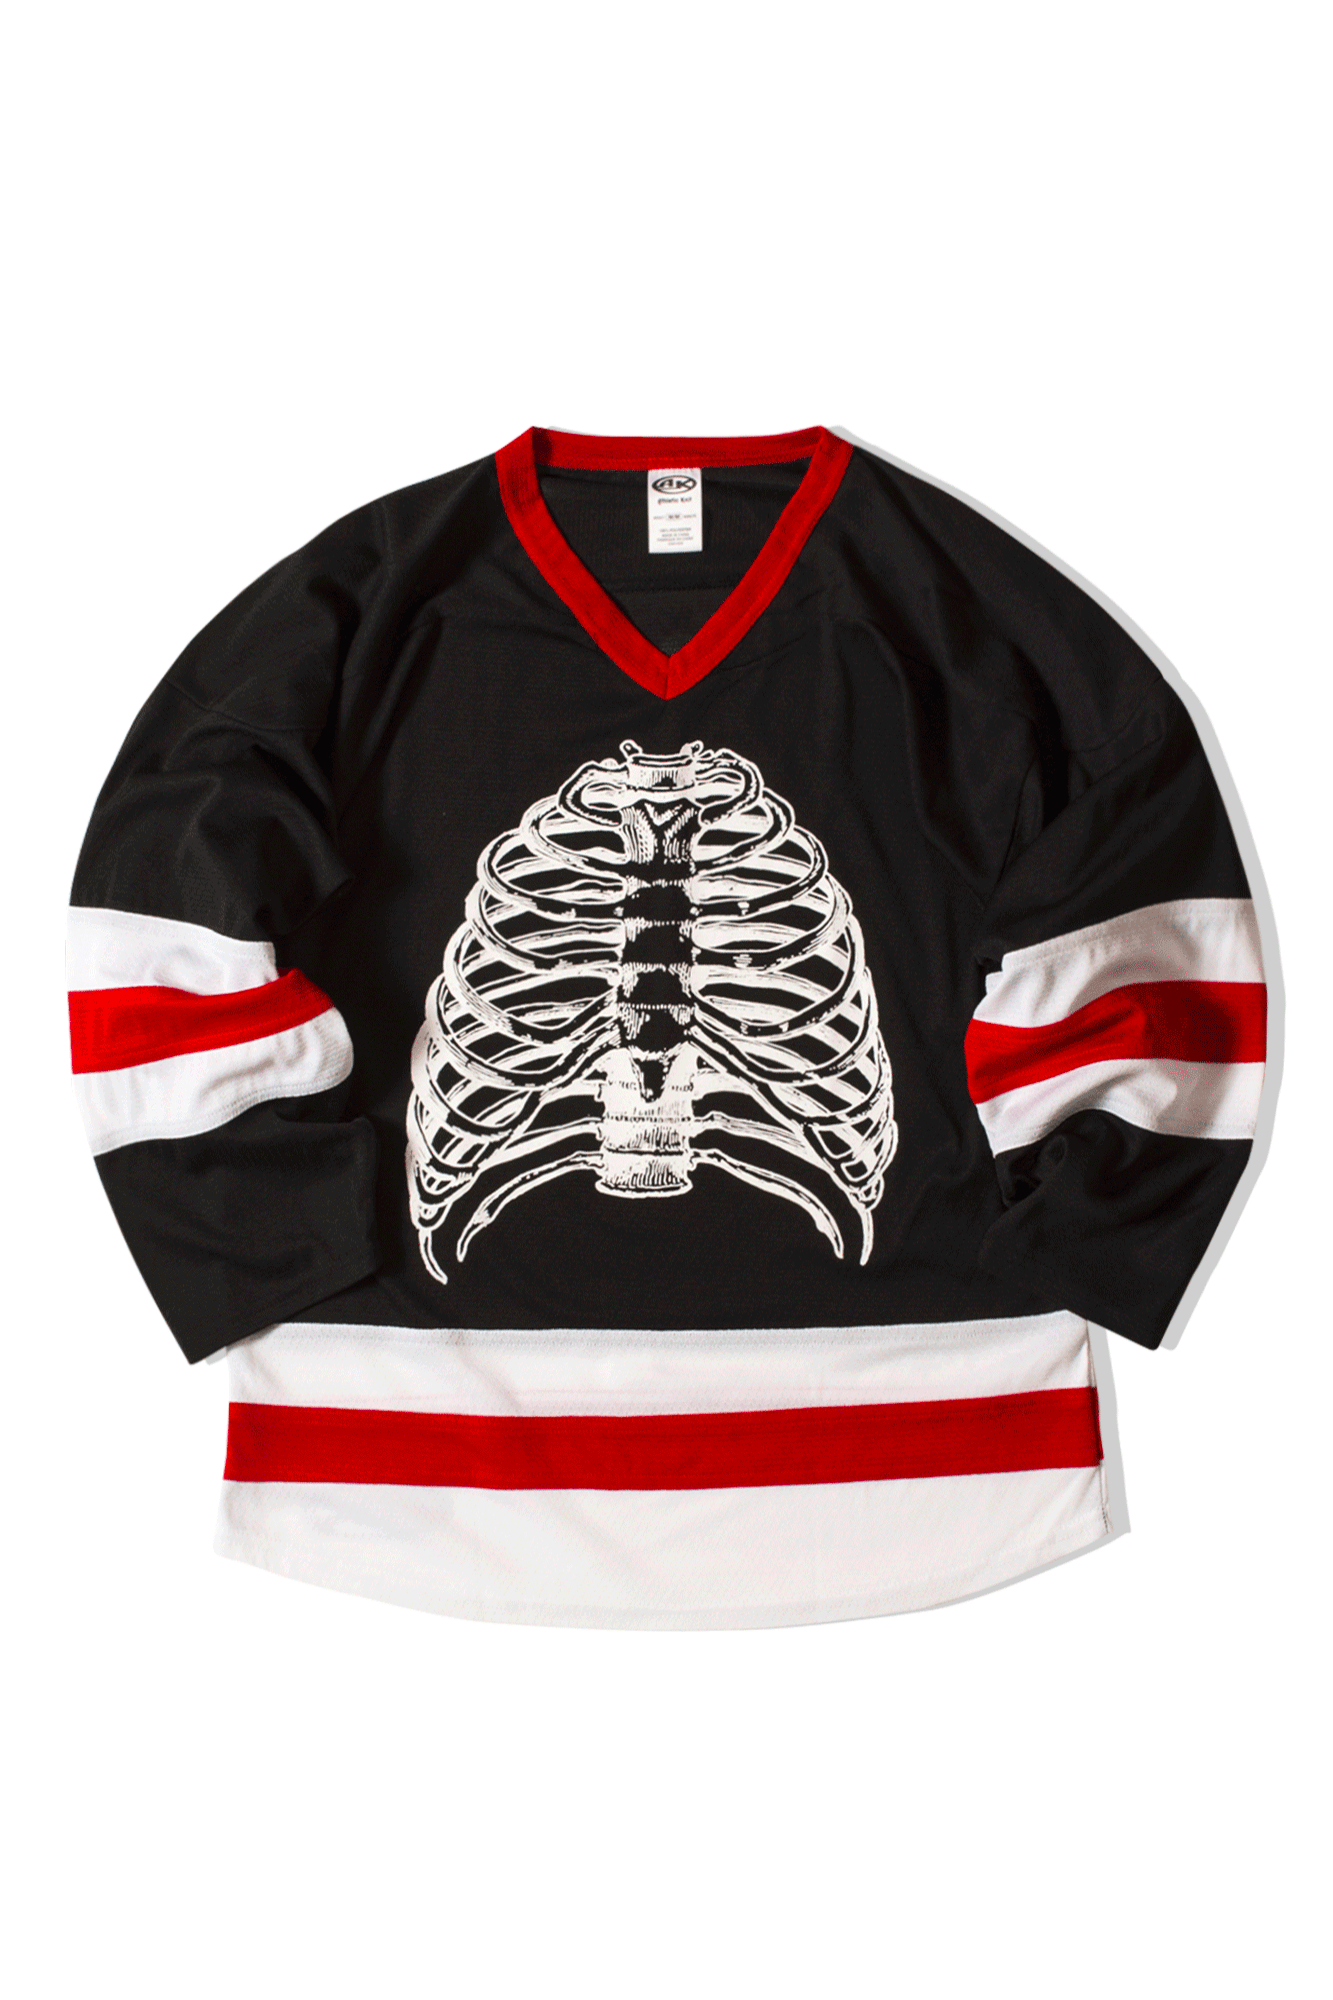 Pleasures Long sleeve T-Shirts Ribs Hockey Jersey Black P19S109037#080#BLK#S - One Block Down